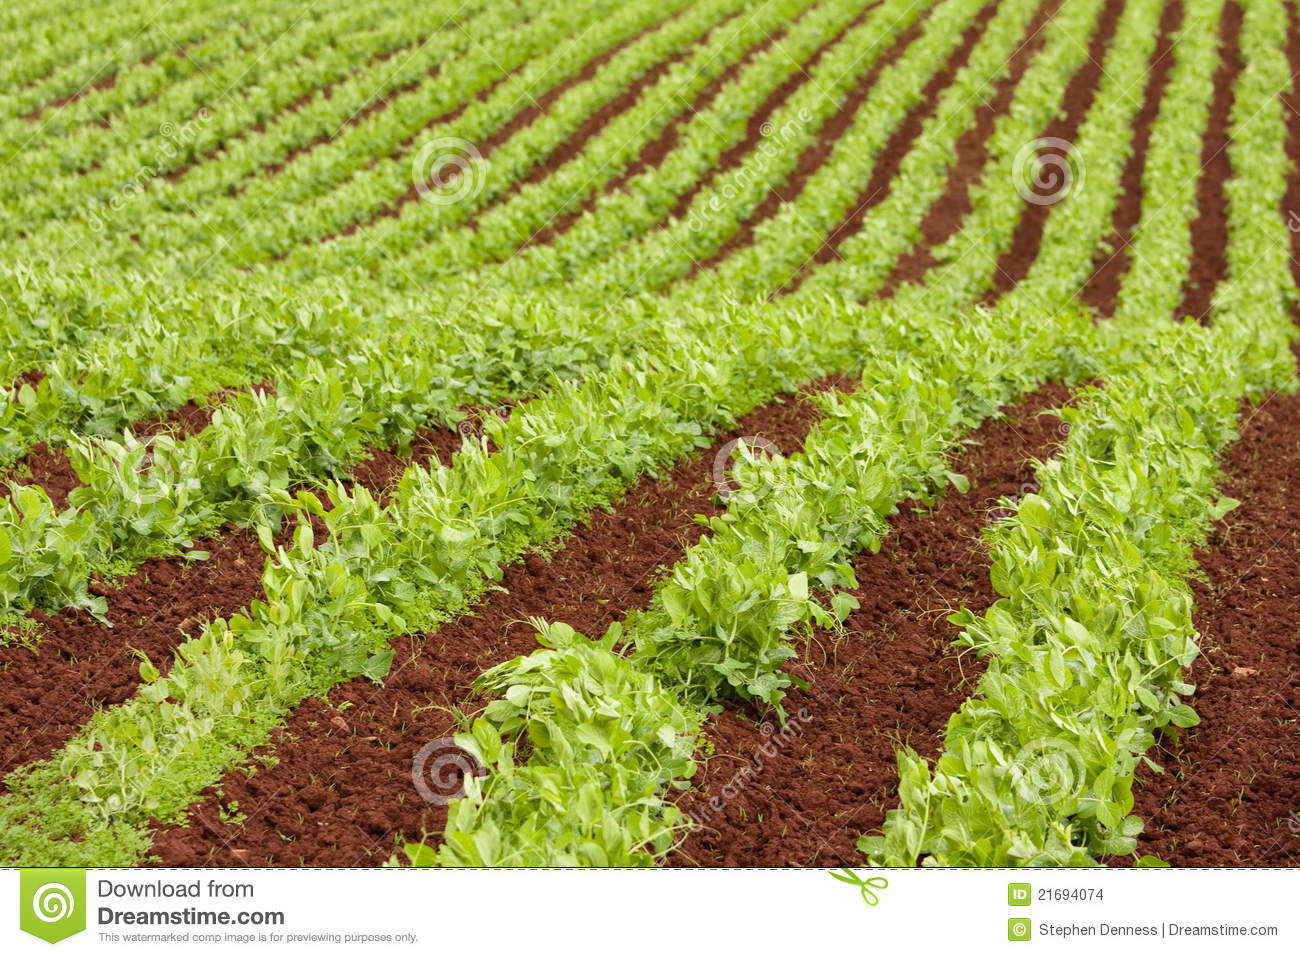 Stock Images Farm Rows Fresh Pea Plants Image21694074 on Sounds Of Farm Animals